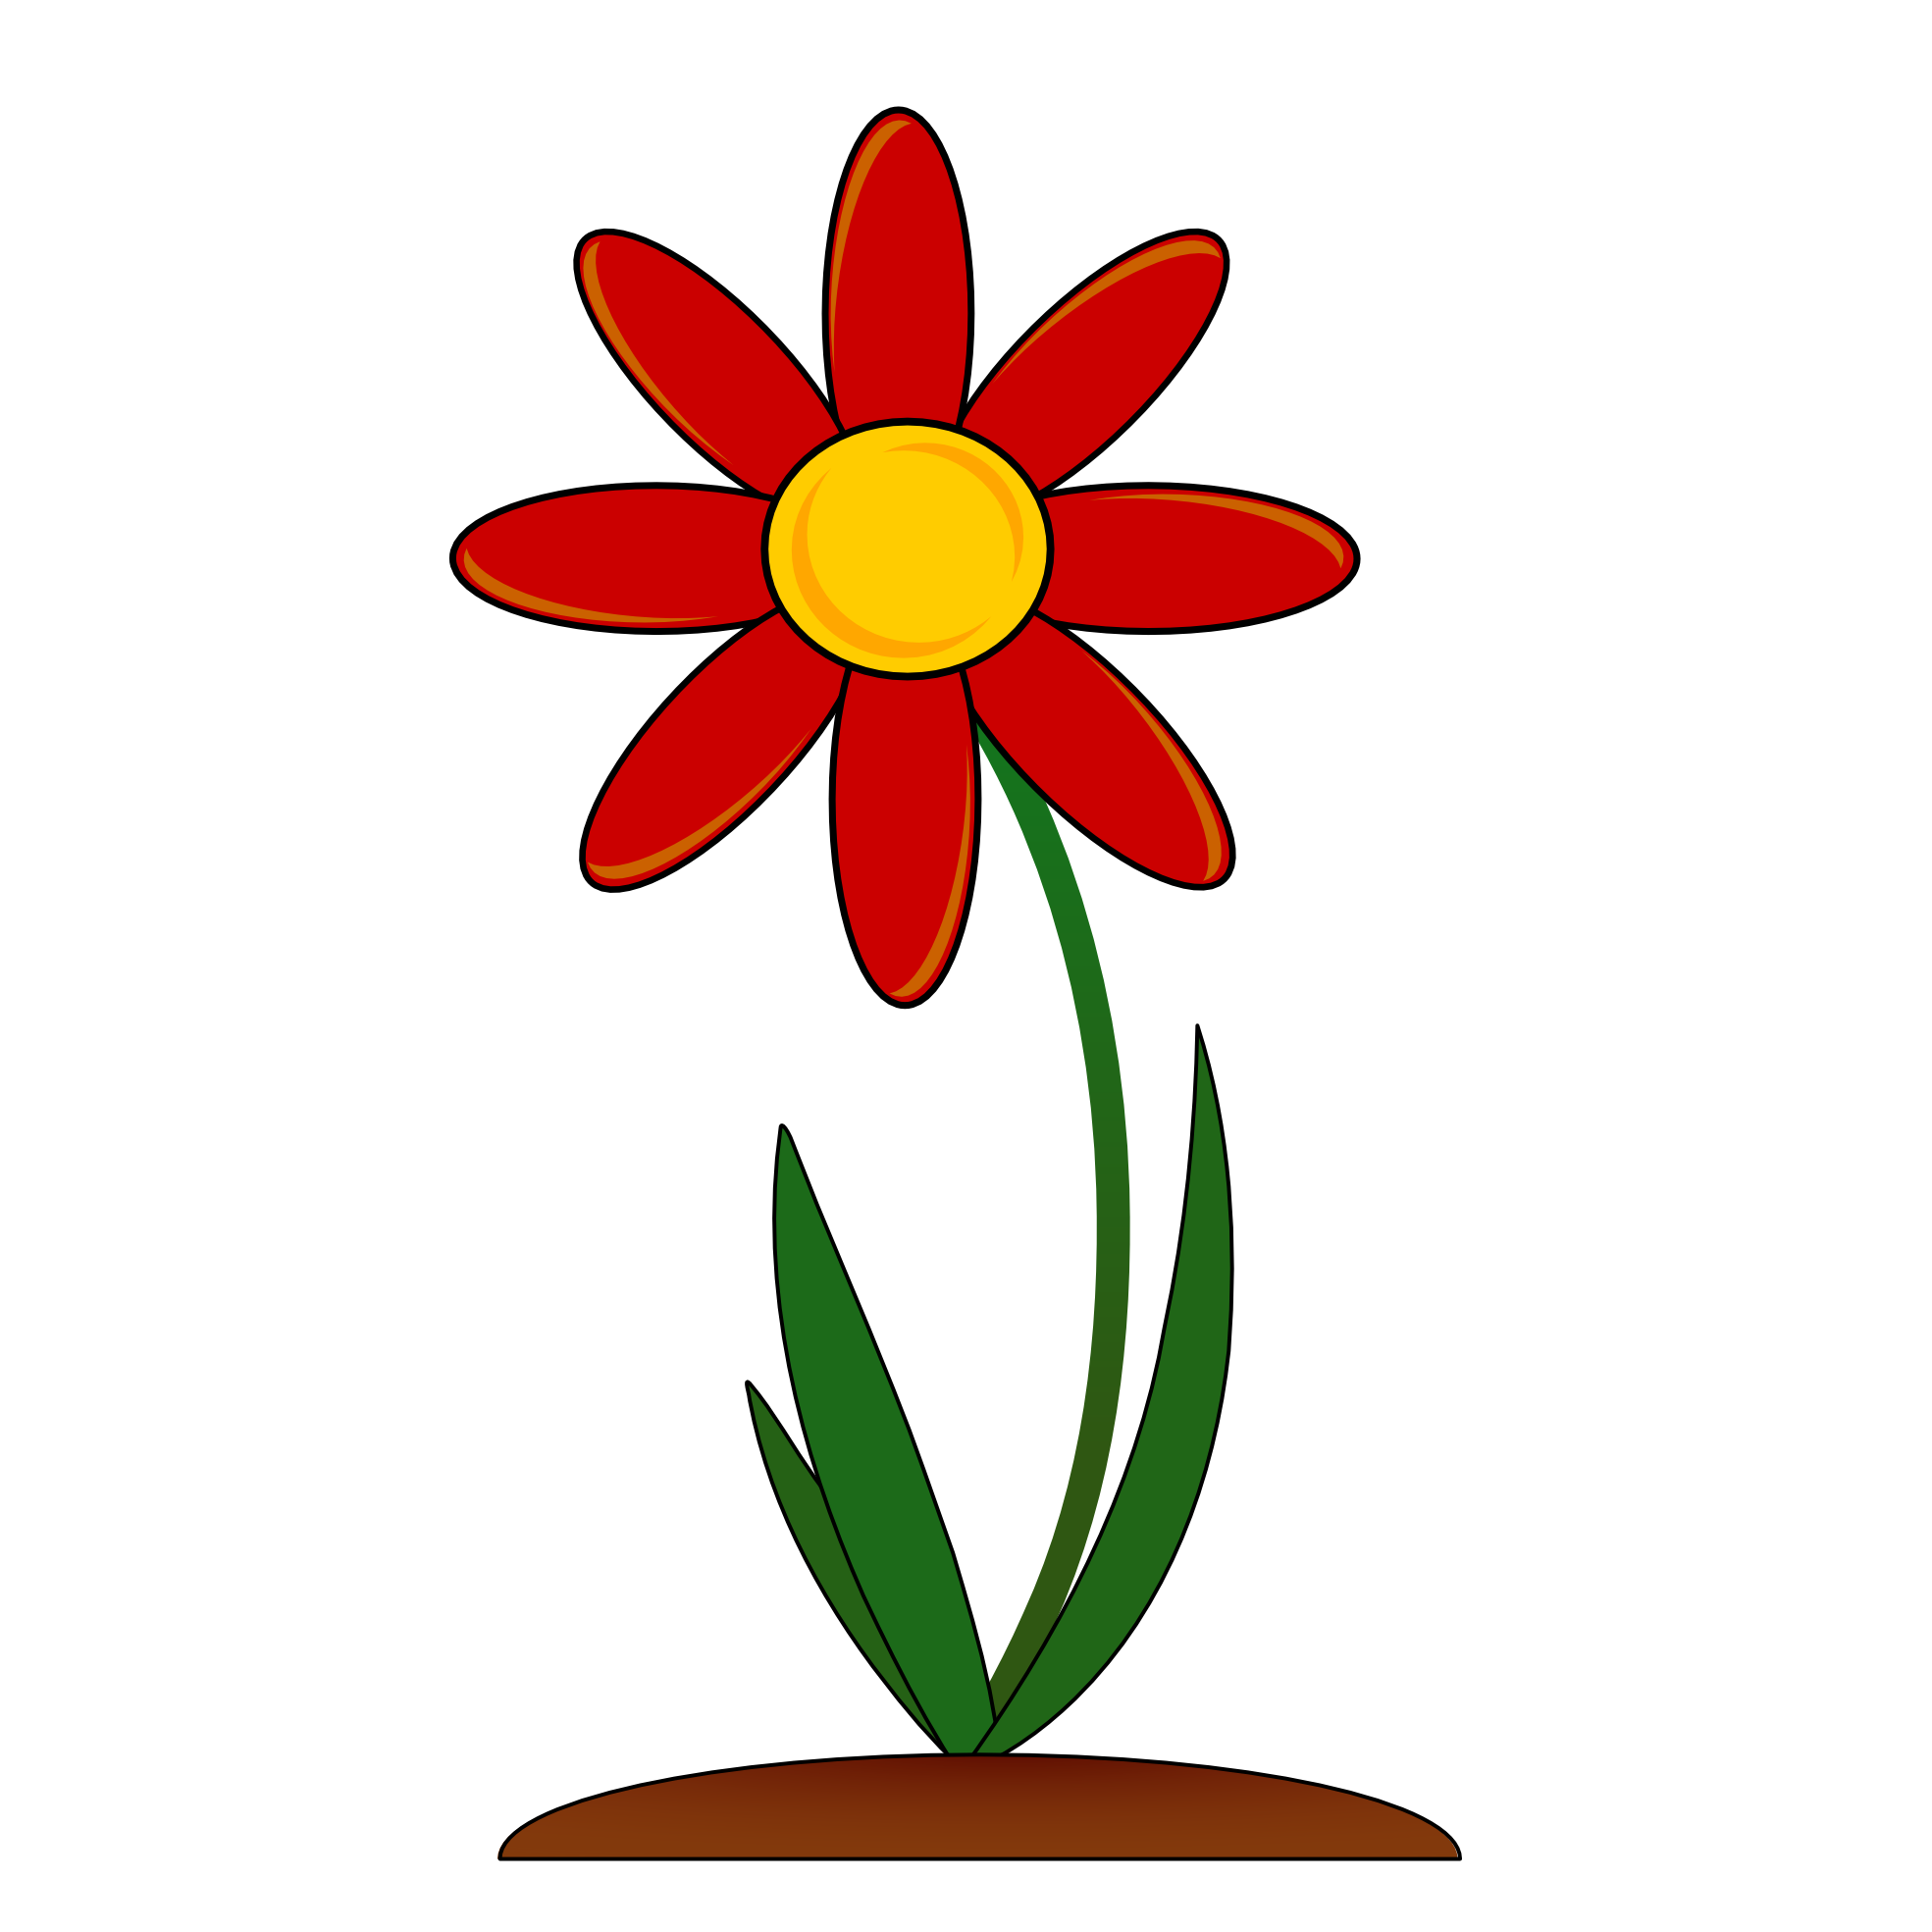 Poppy clipart solid flower. Heart at getdrawings com